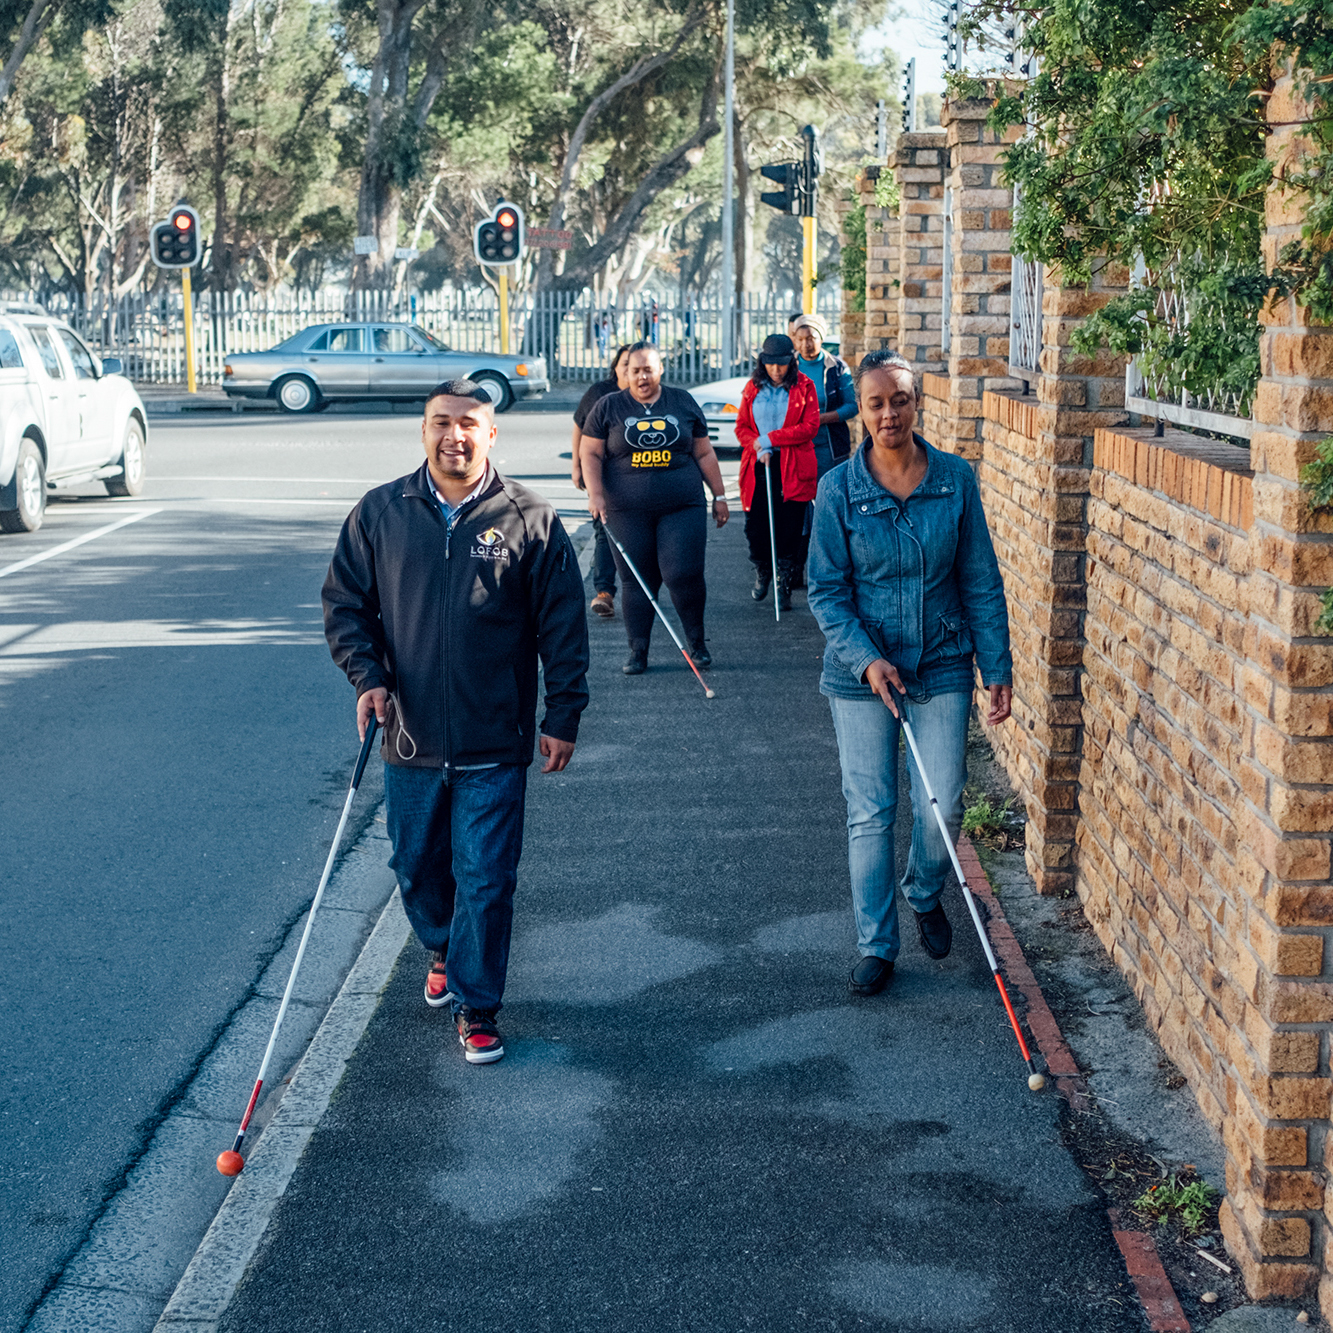 a group using canes to walk